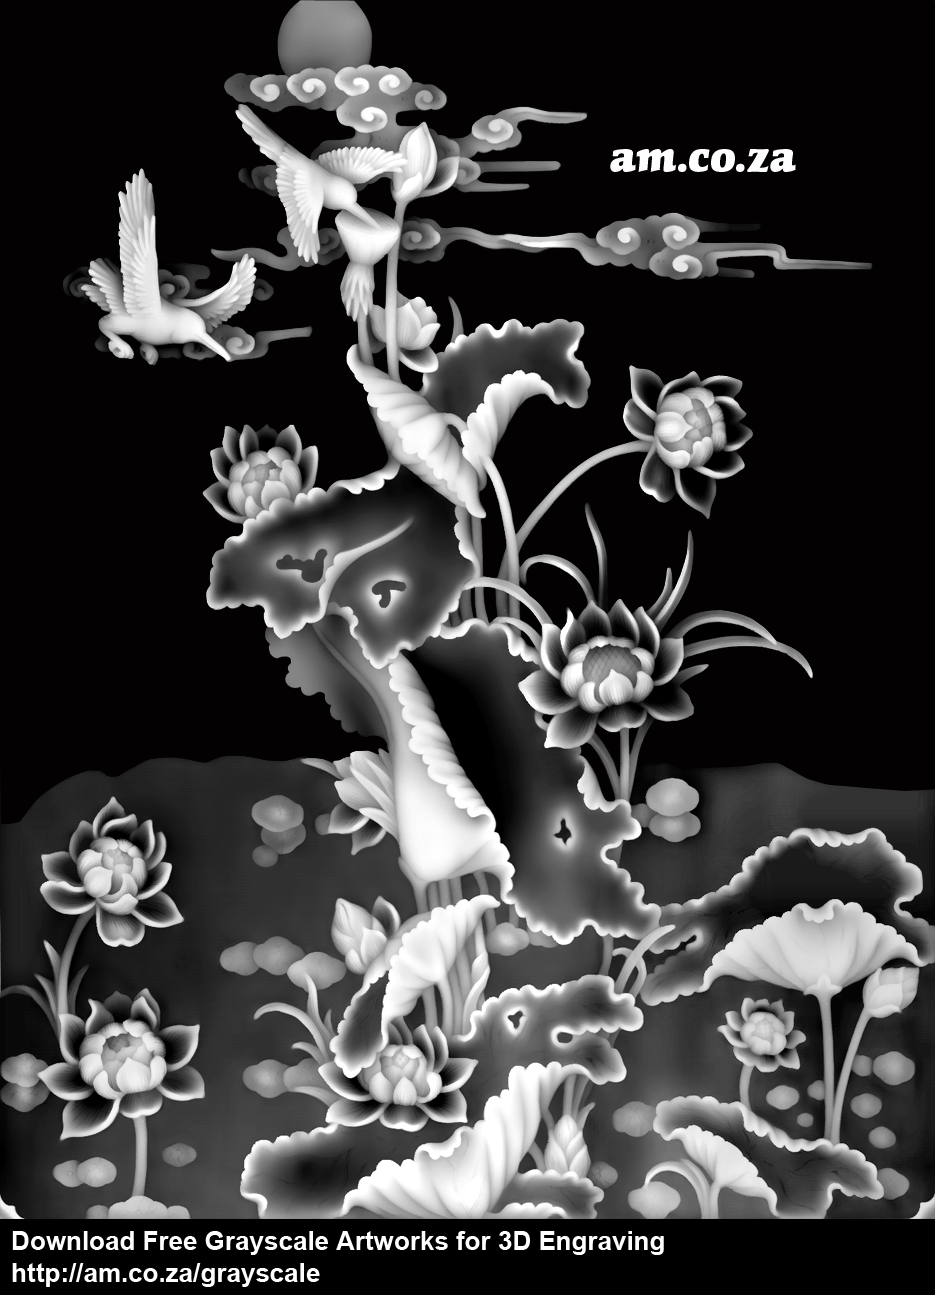 Grayscale 3d relief picture and images - Lotus Flower With Birdssize 935 1219